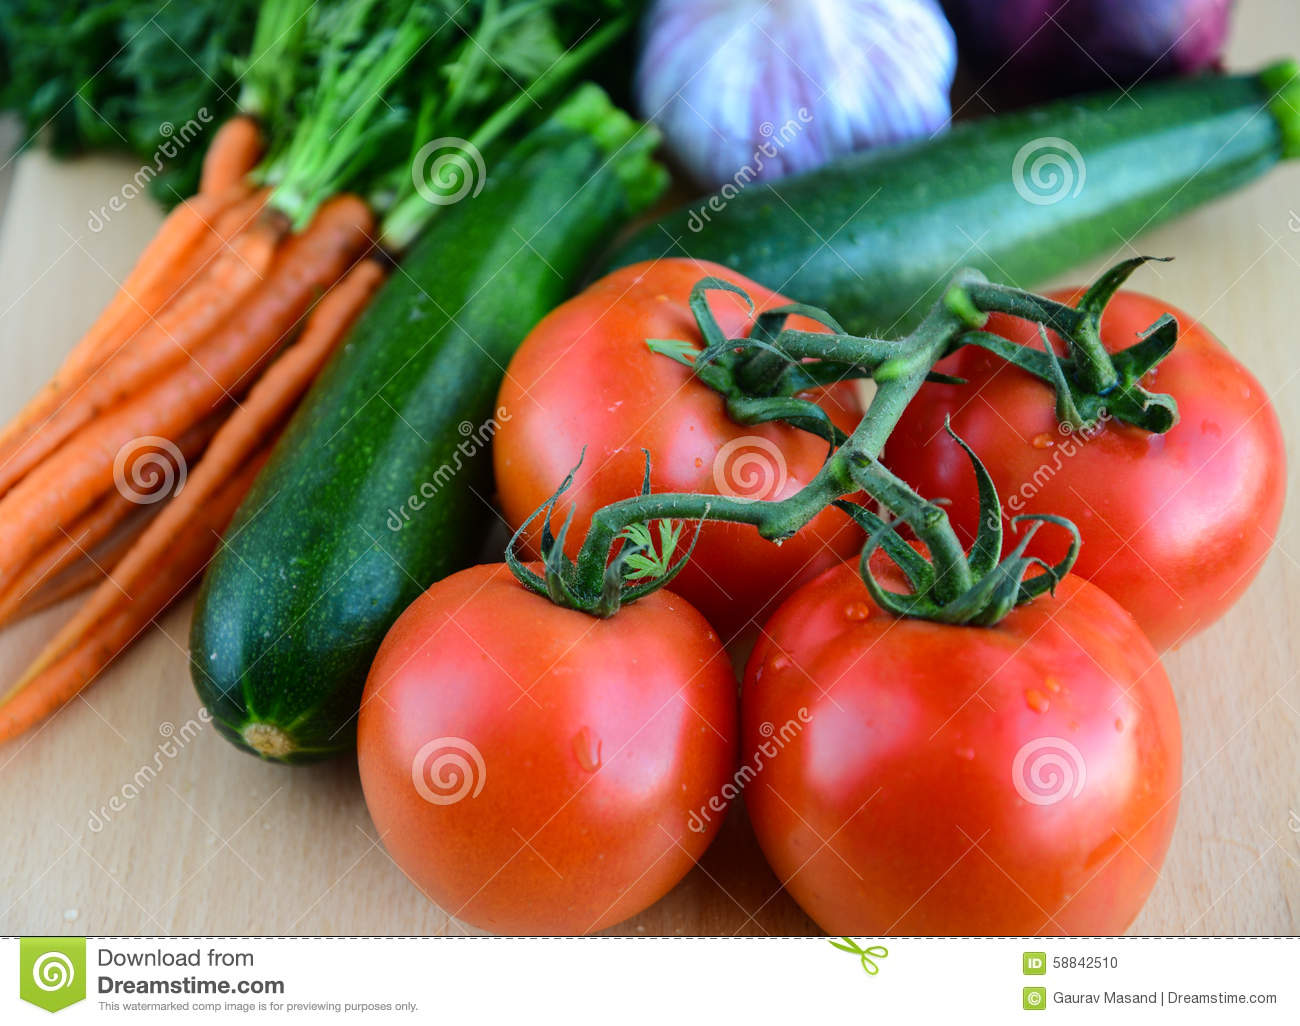 tomato a fruit or vegetable healthy salads with fruit